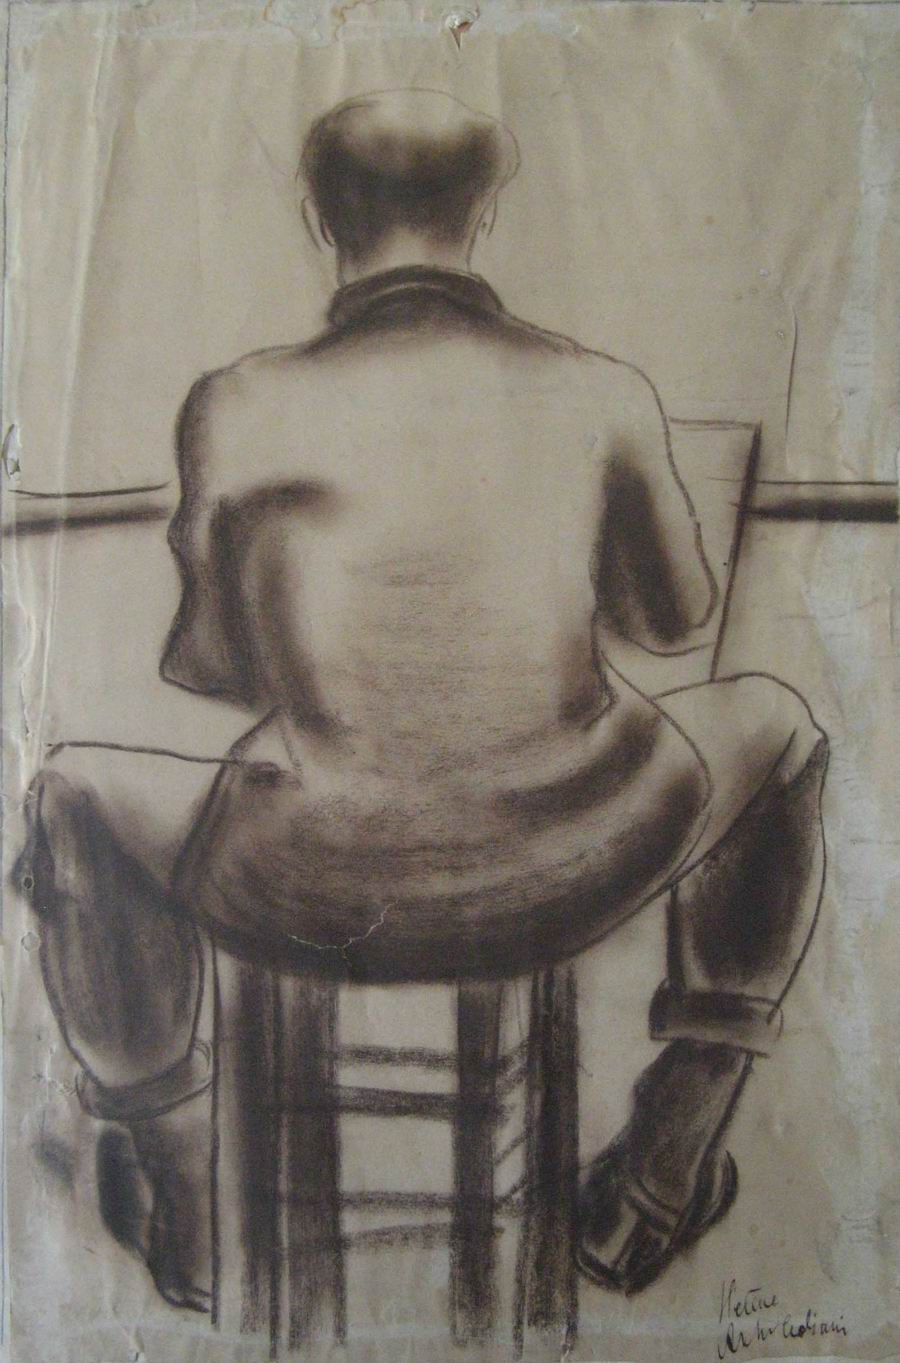 charcoal on cardboard, 37,5X28, Paris 1926